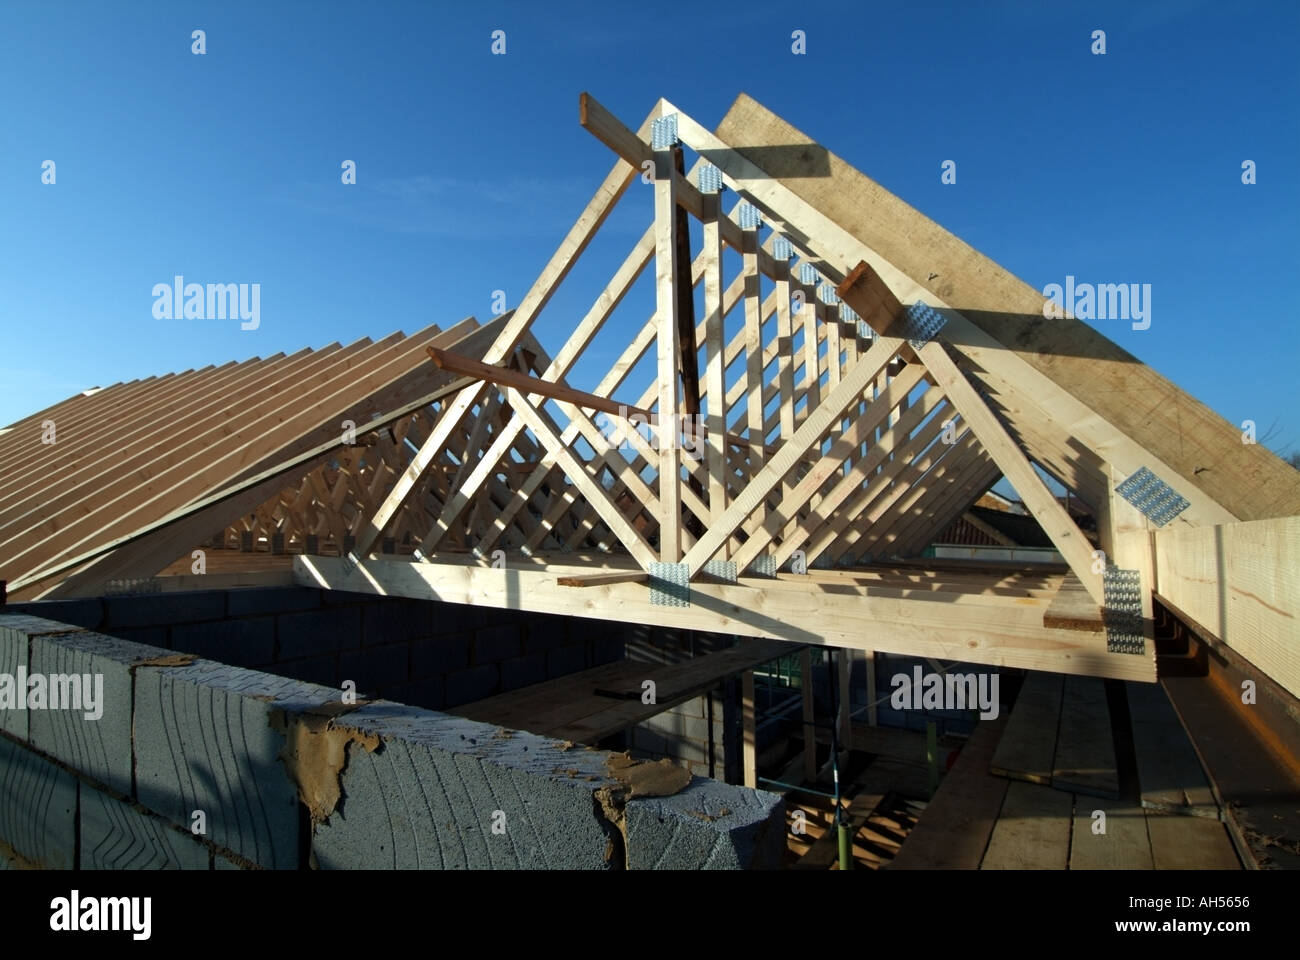 detached house work in progress fixing prefabricated roof